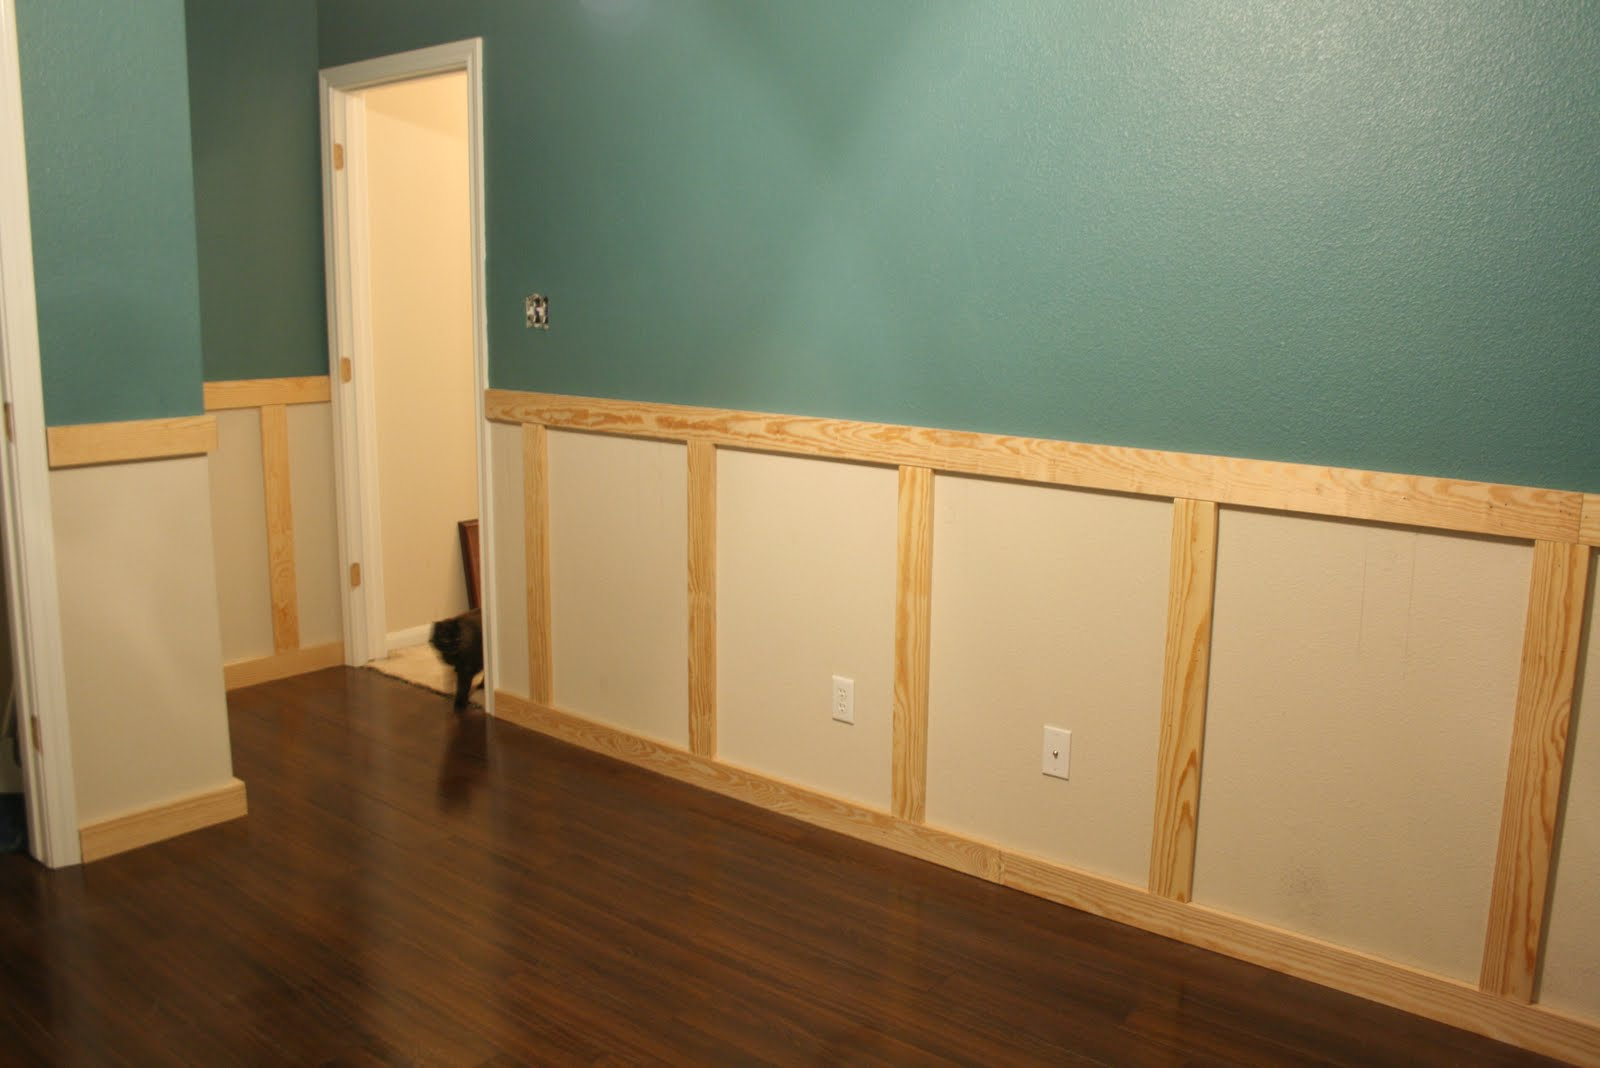 Wainscoting installation stage 1 Images of wainscoting in bedrooms